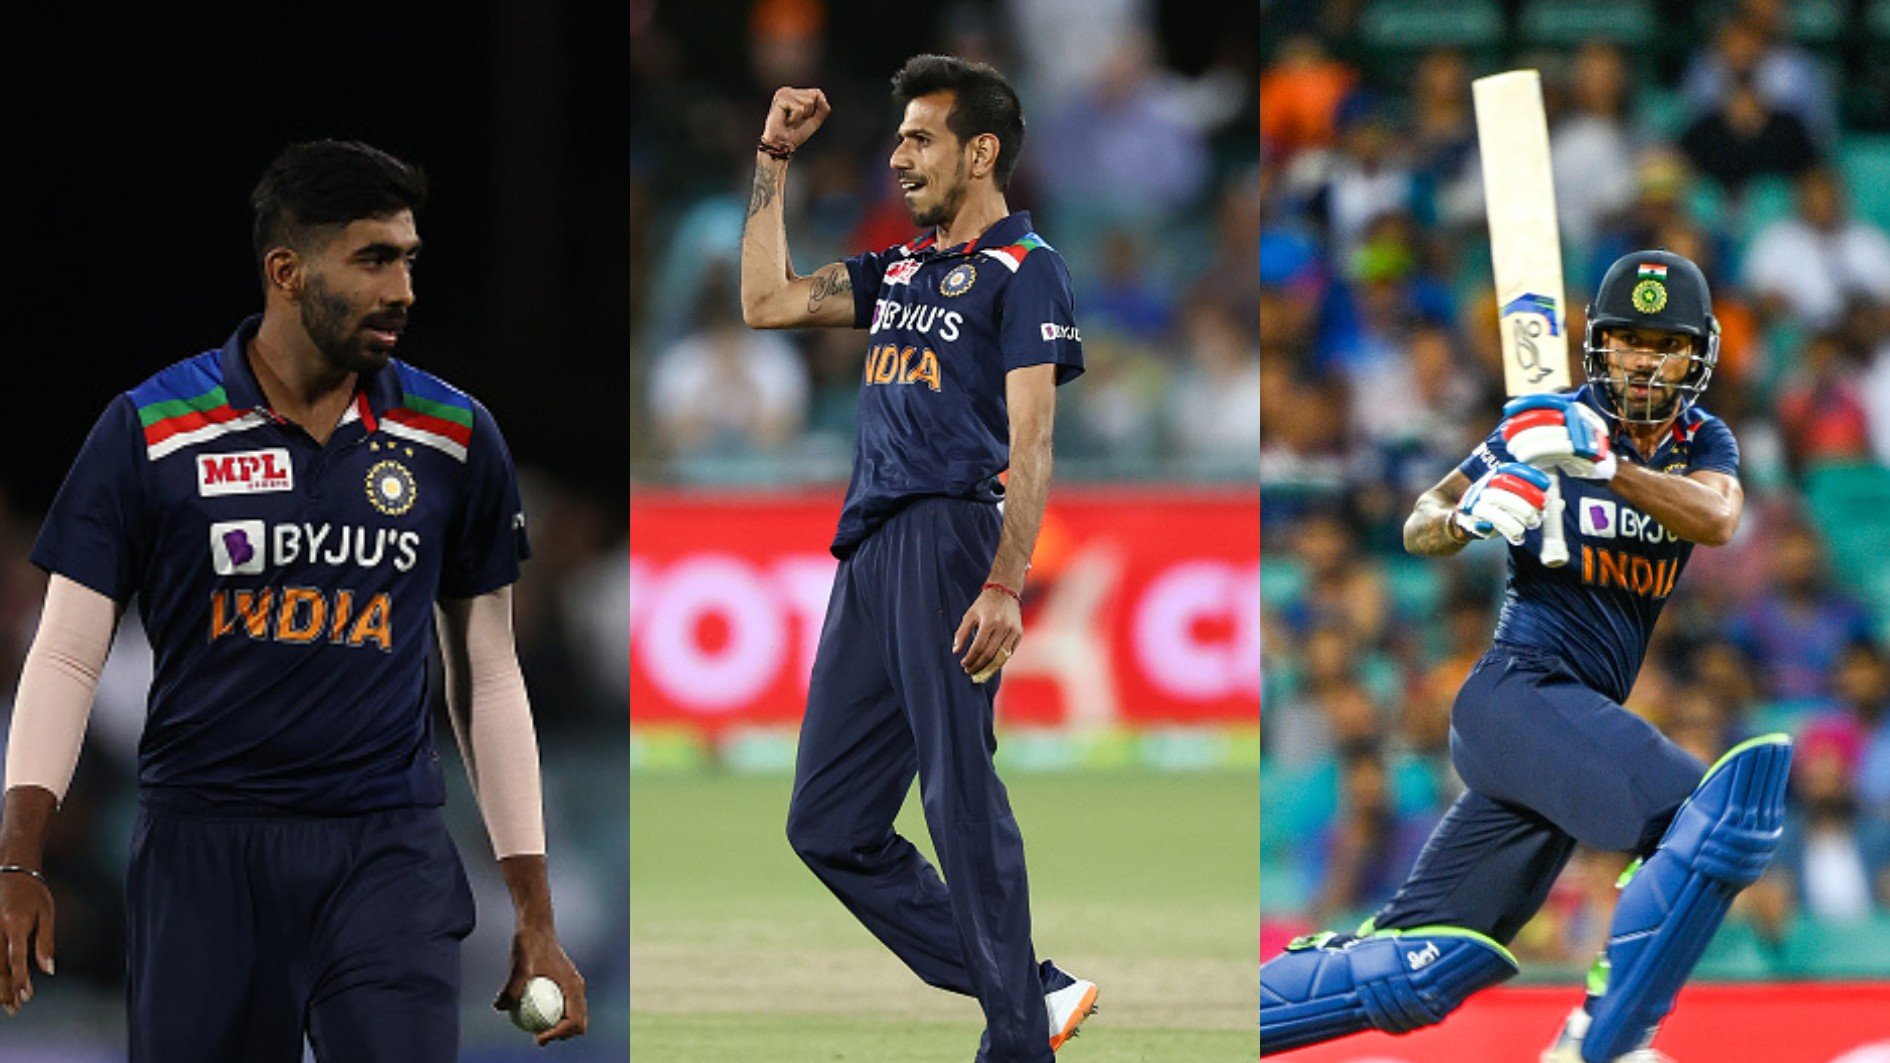 AUS v IND 2020-21: Chahal equals Bumrah as India's highest wicket-taker in T20Is; Dhawan's new milestone